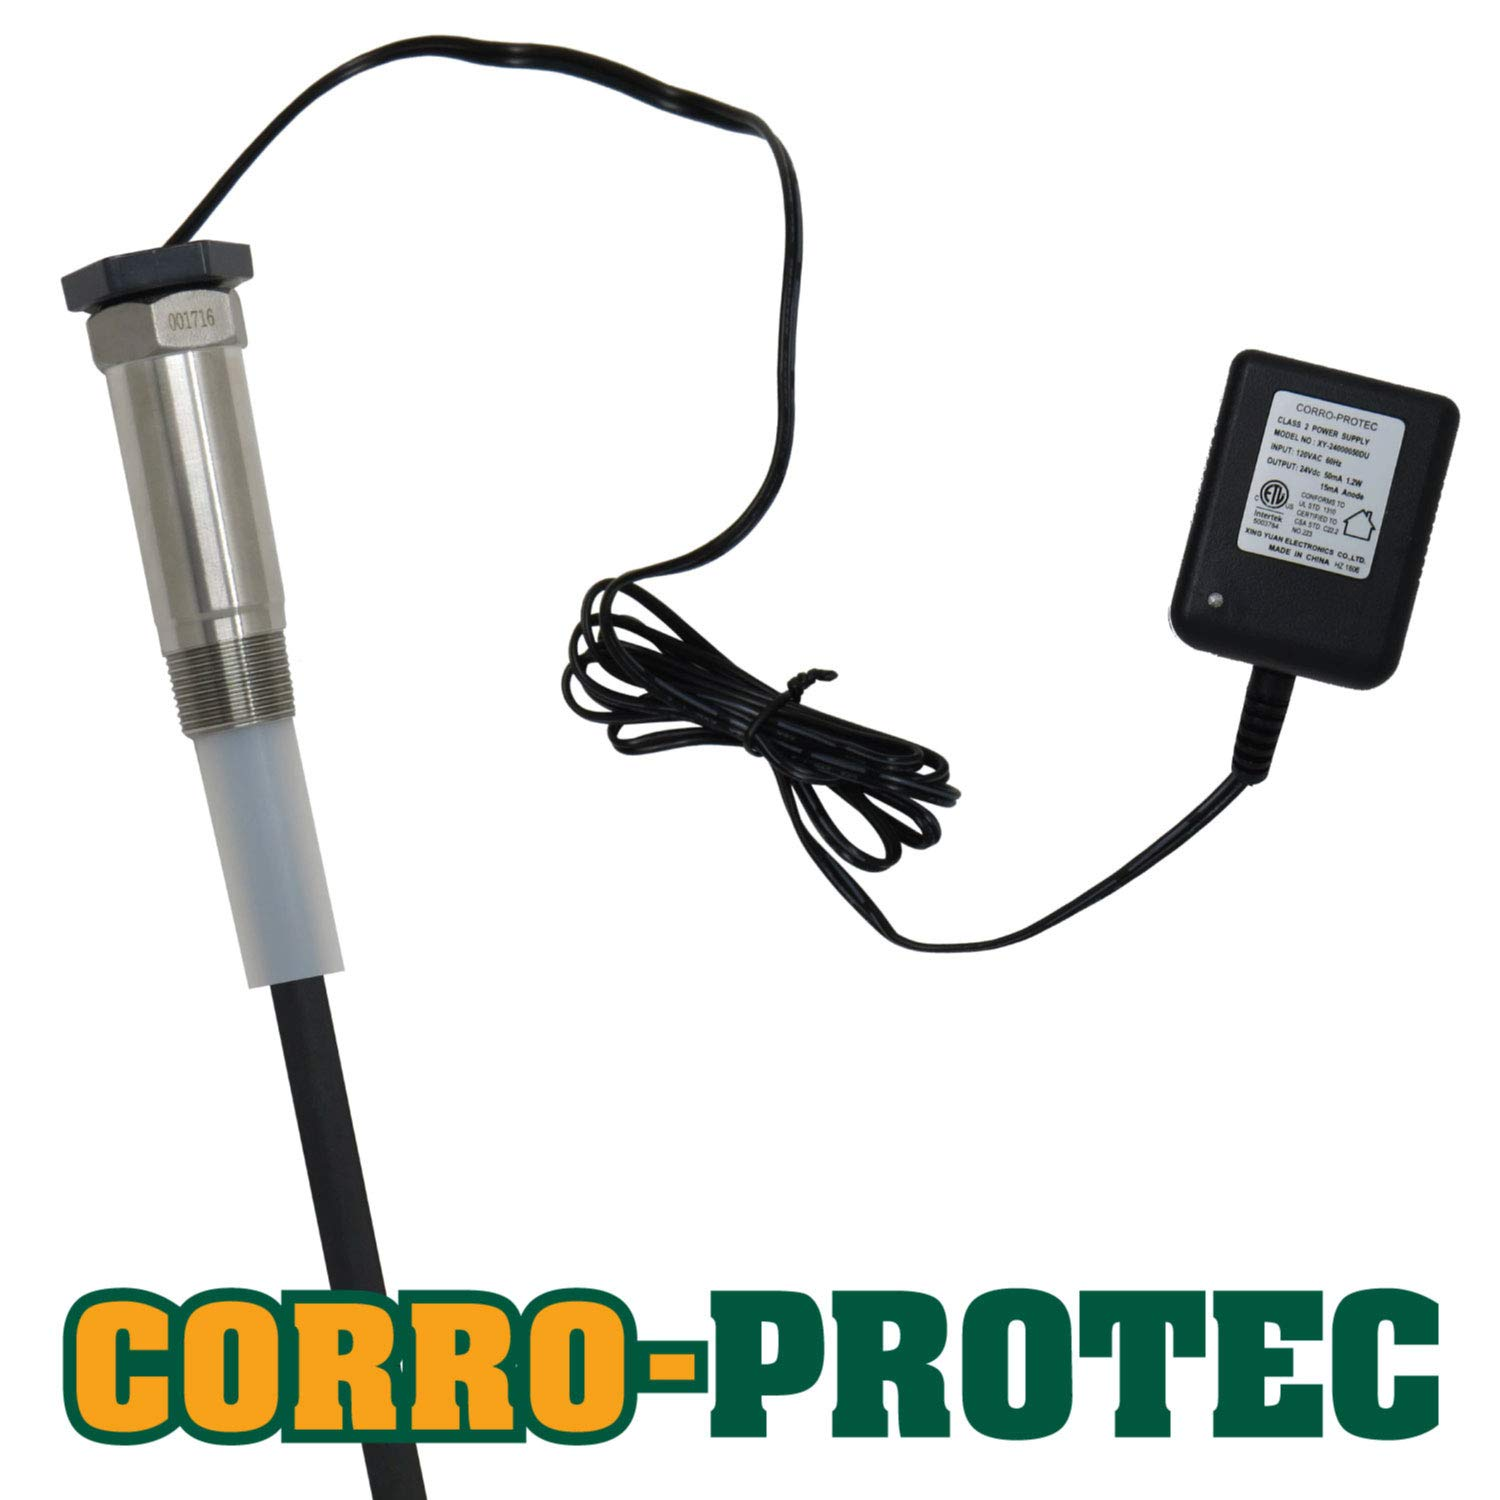 Corro-Protec CP-R Water Heater Powered Titanium Anode Rod (40-80 Gallon Tank) - Eliminate Odor (Sulfur/rotten egg smell), Corrosion and Reduce Limescale